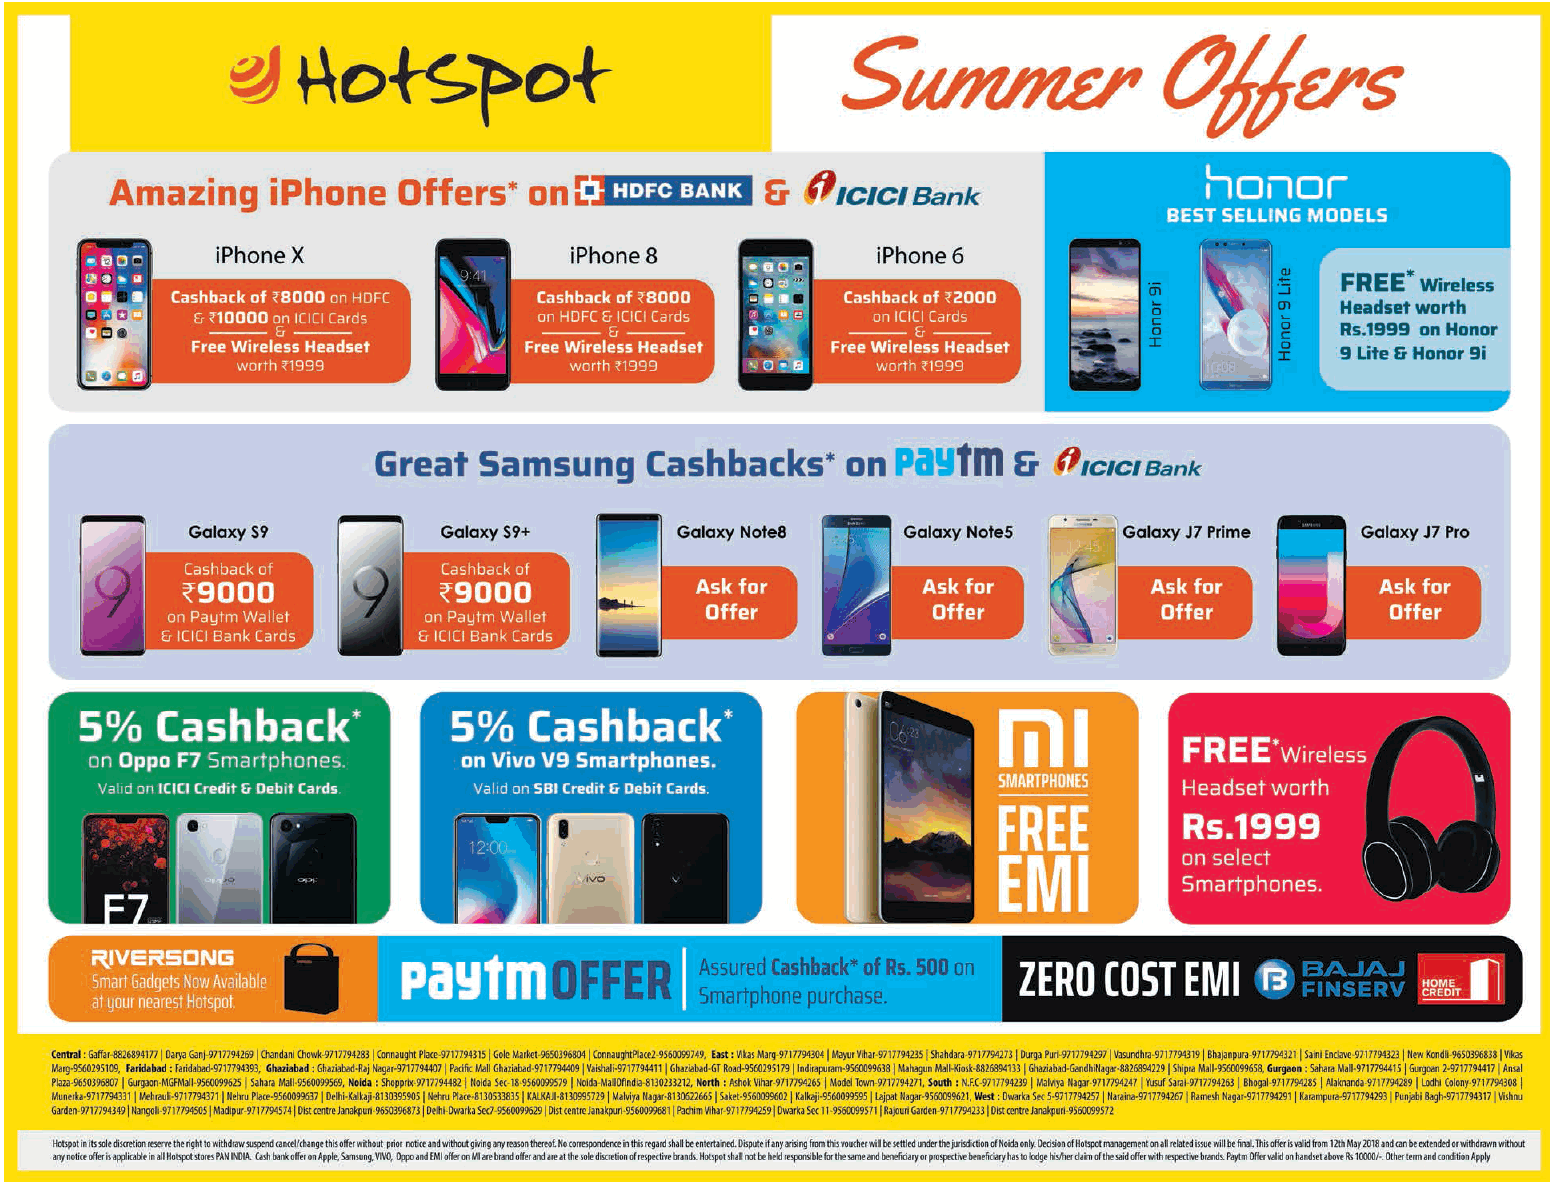 Hotspot Summer Offers Mazing Iphone Offers On Hdfc Bank And Icici Bank Ad